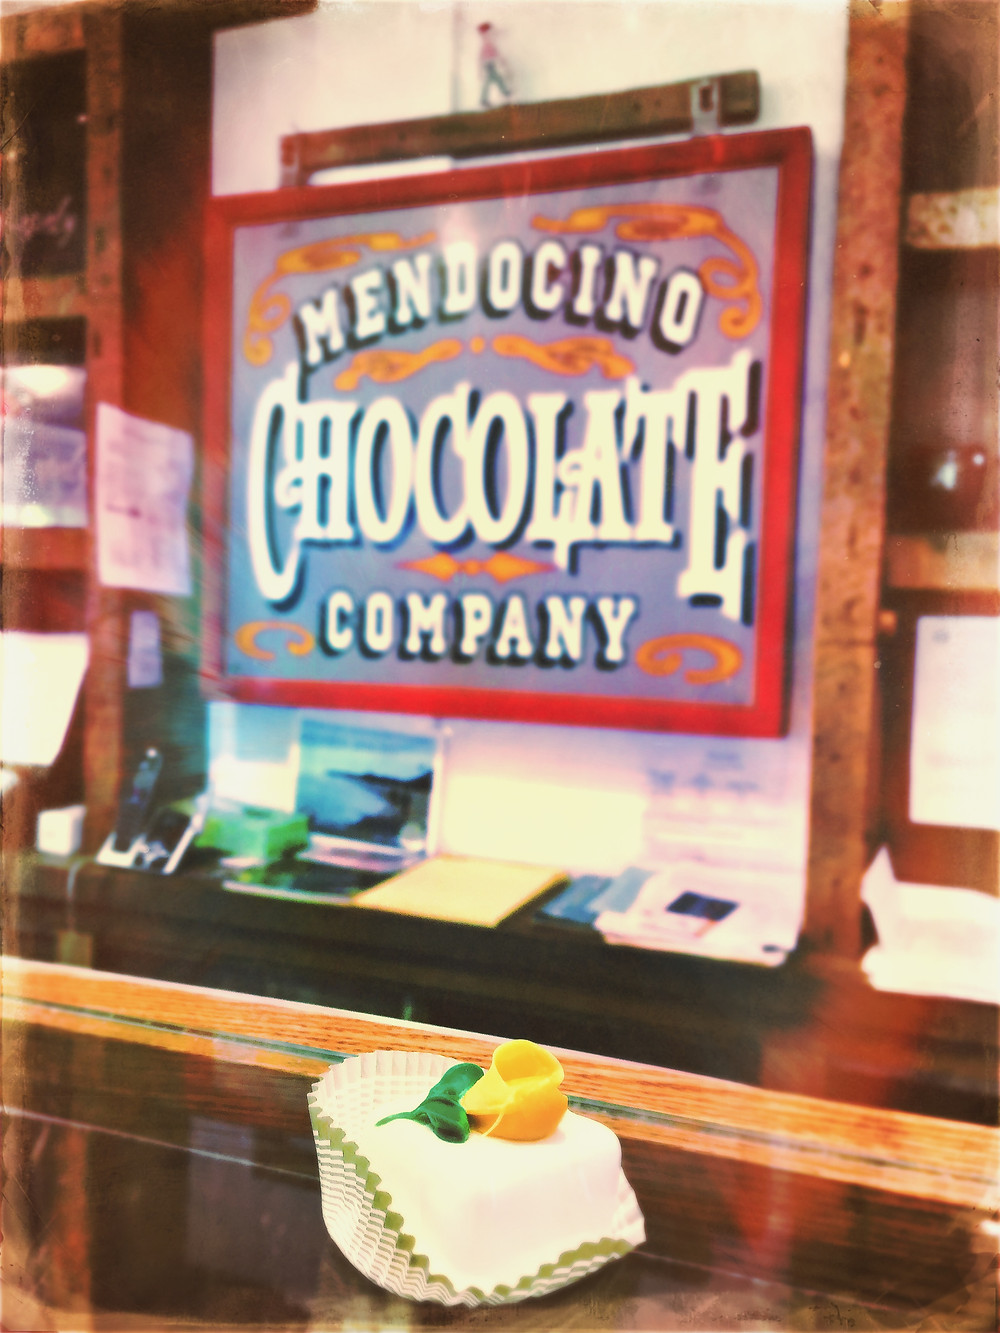 Rhum-filled chocolate extravaganza by Mendocino Chocolate Company.